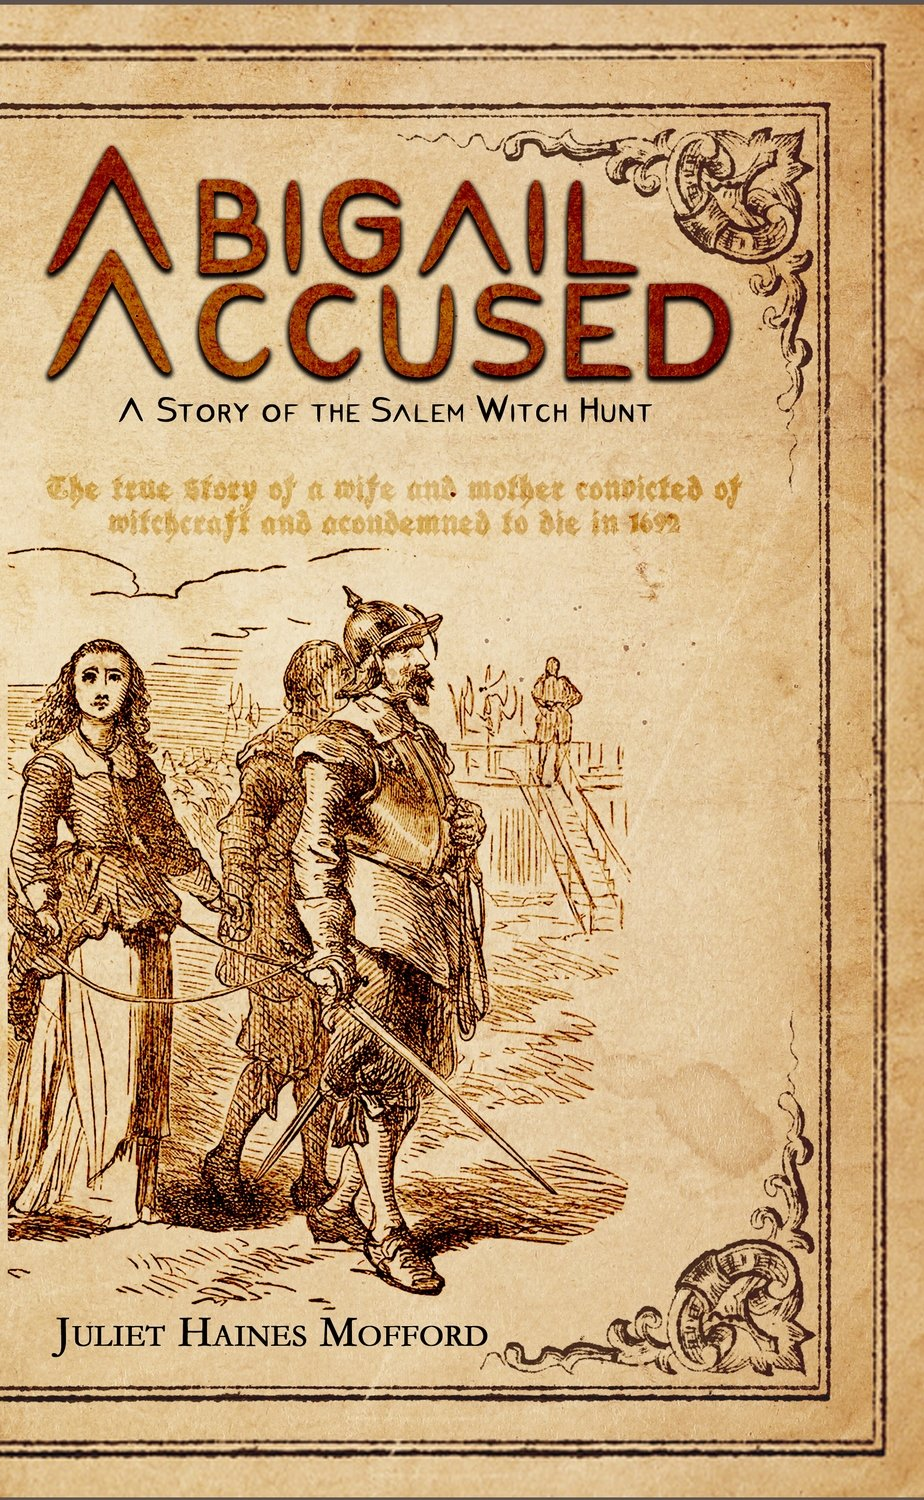 Abigail Accused: A Story of the Salem Witch Hunt